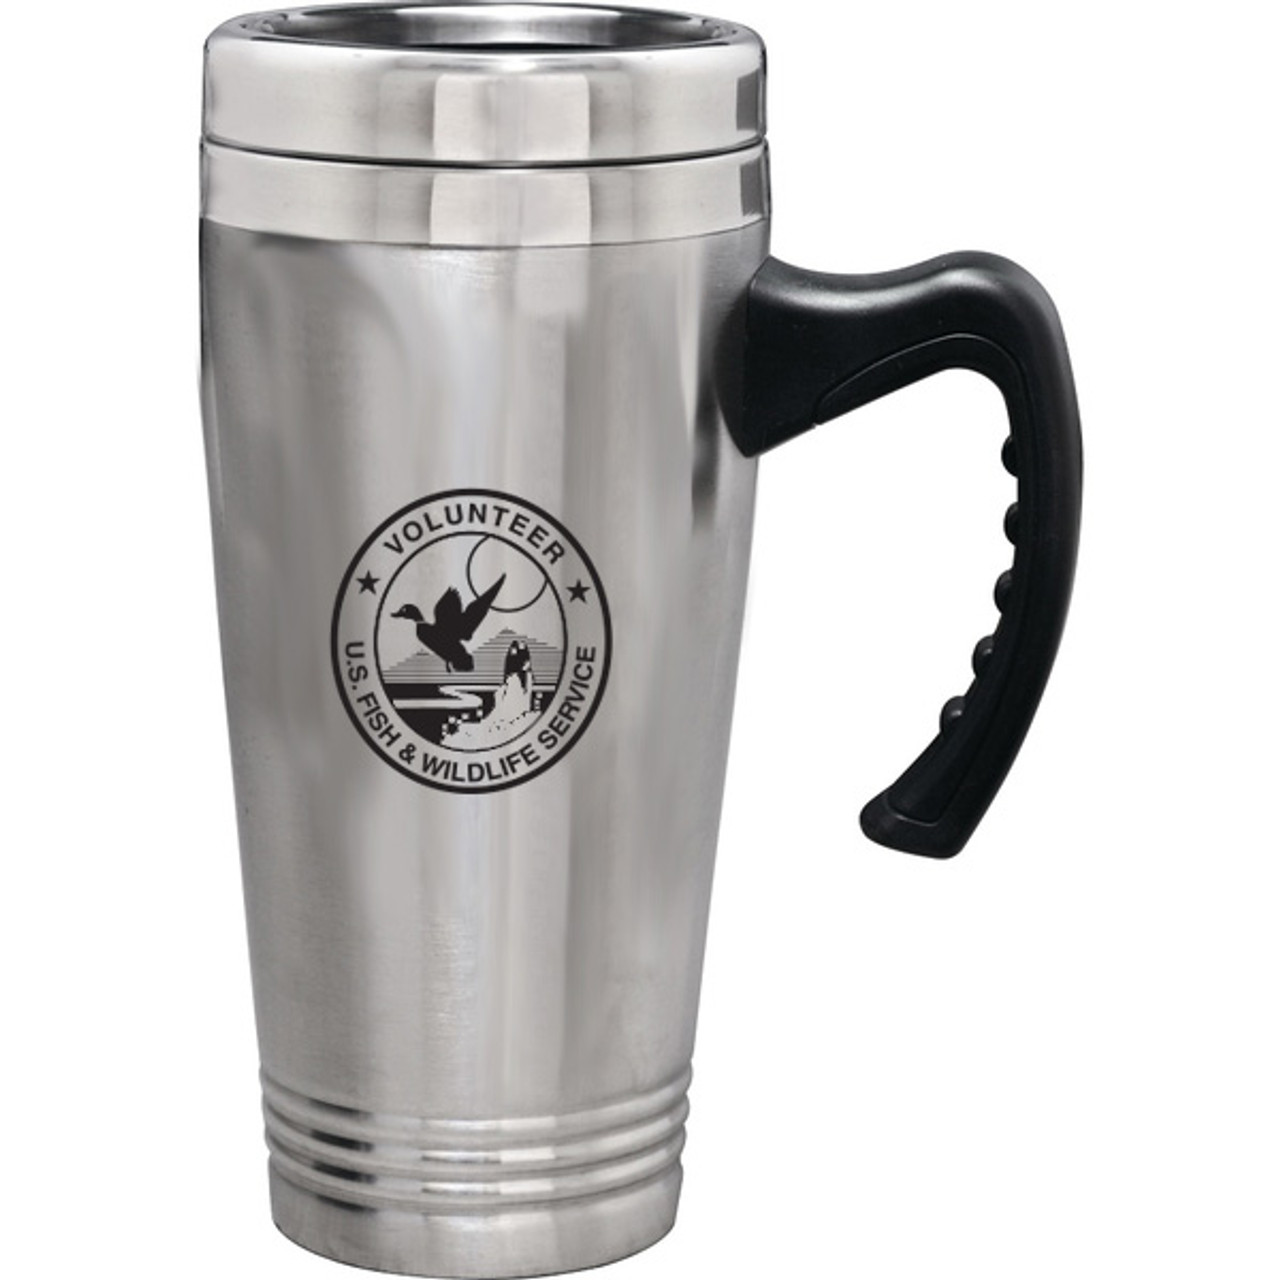 Stainless Steel Travel Mug - Fish & Wildlife Service Volunteer